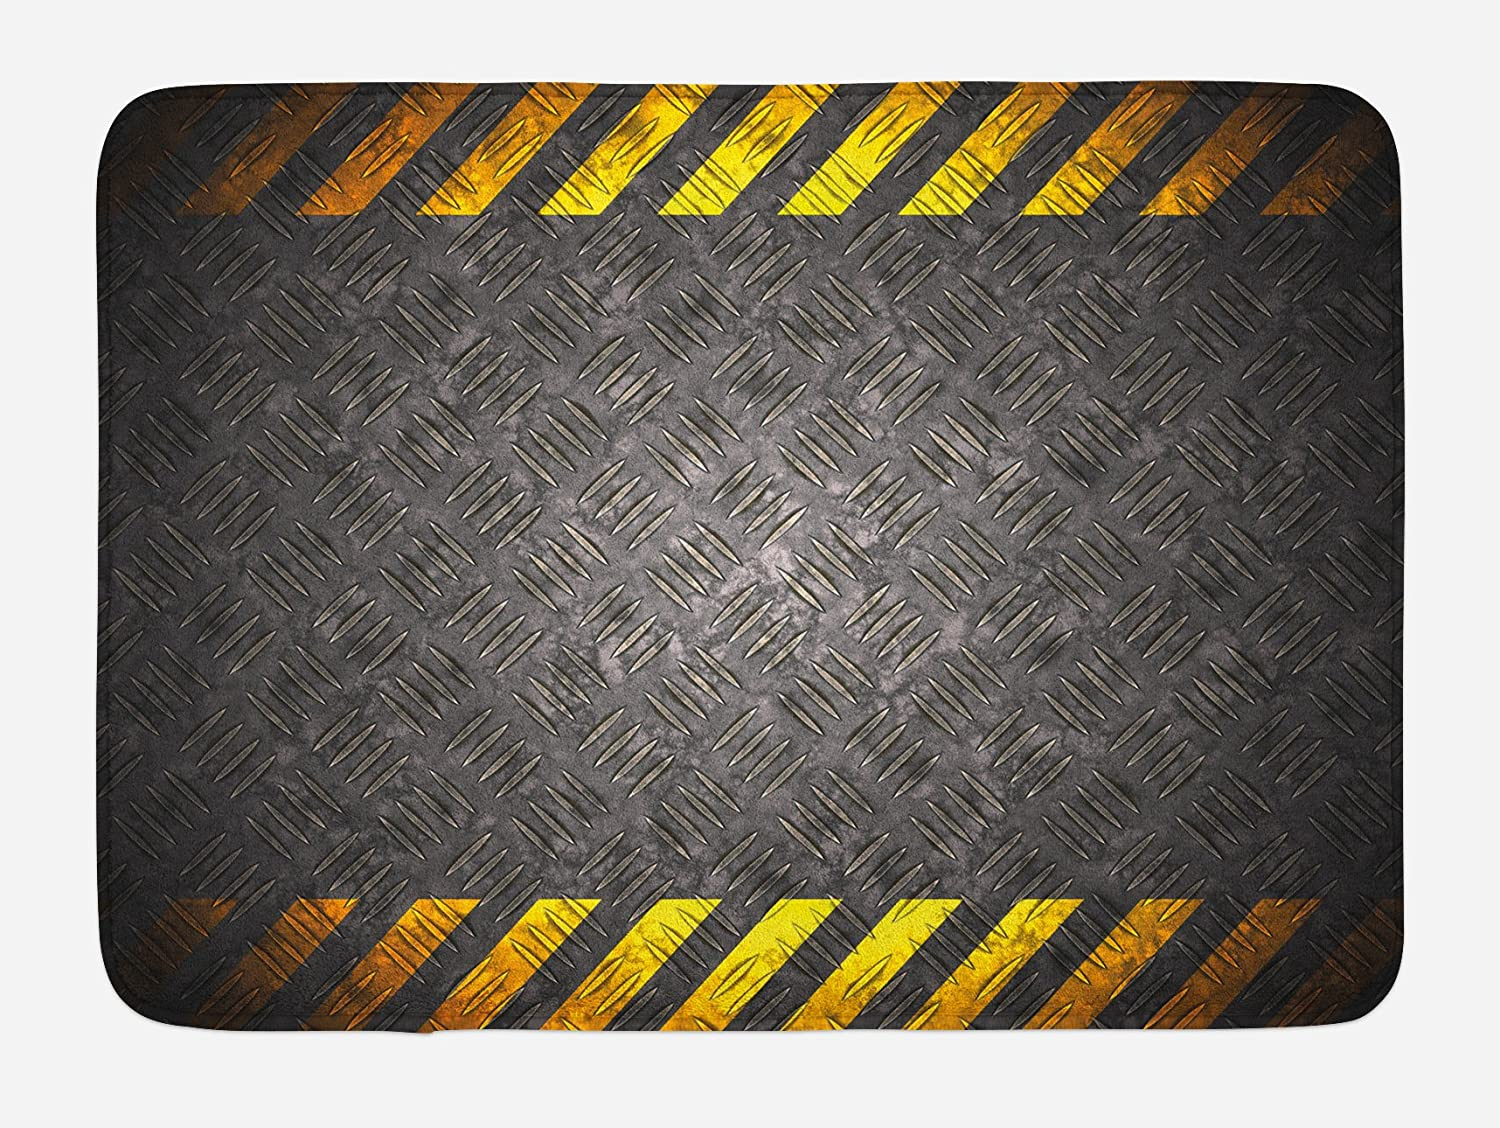 Ambesonne Construction Bath Mat, Abstract Background with Caution Tape Inspired Frame Borders, Plush Bathroom Decor Mat with Non Slip Backing, 29.5